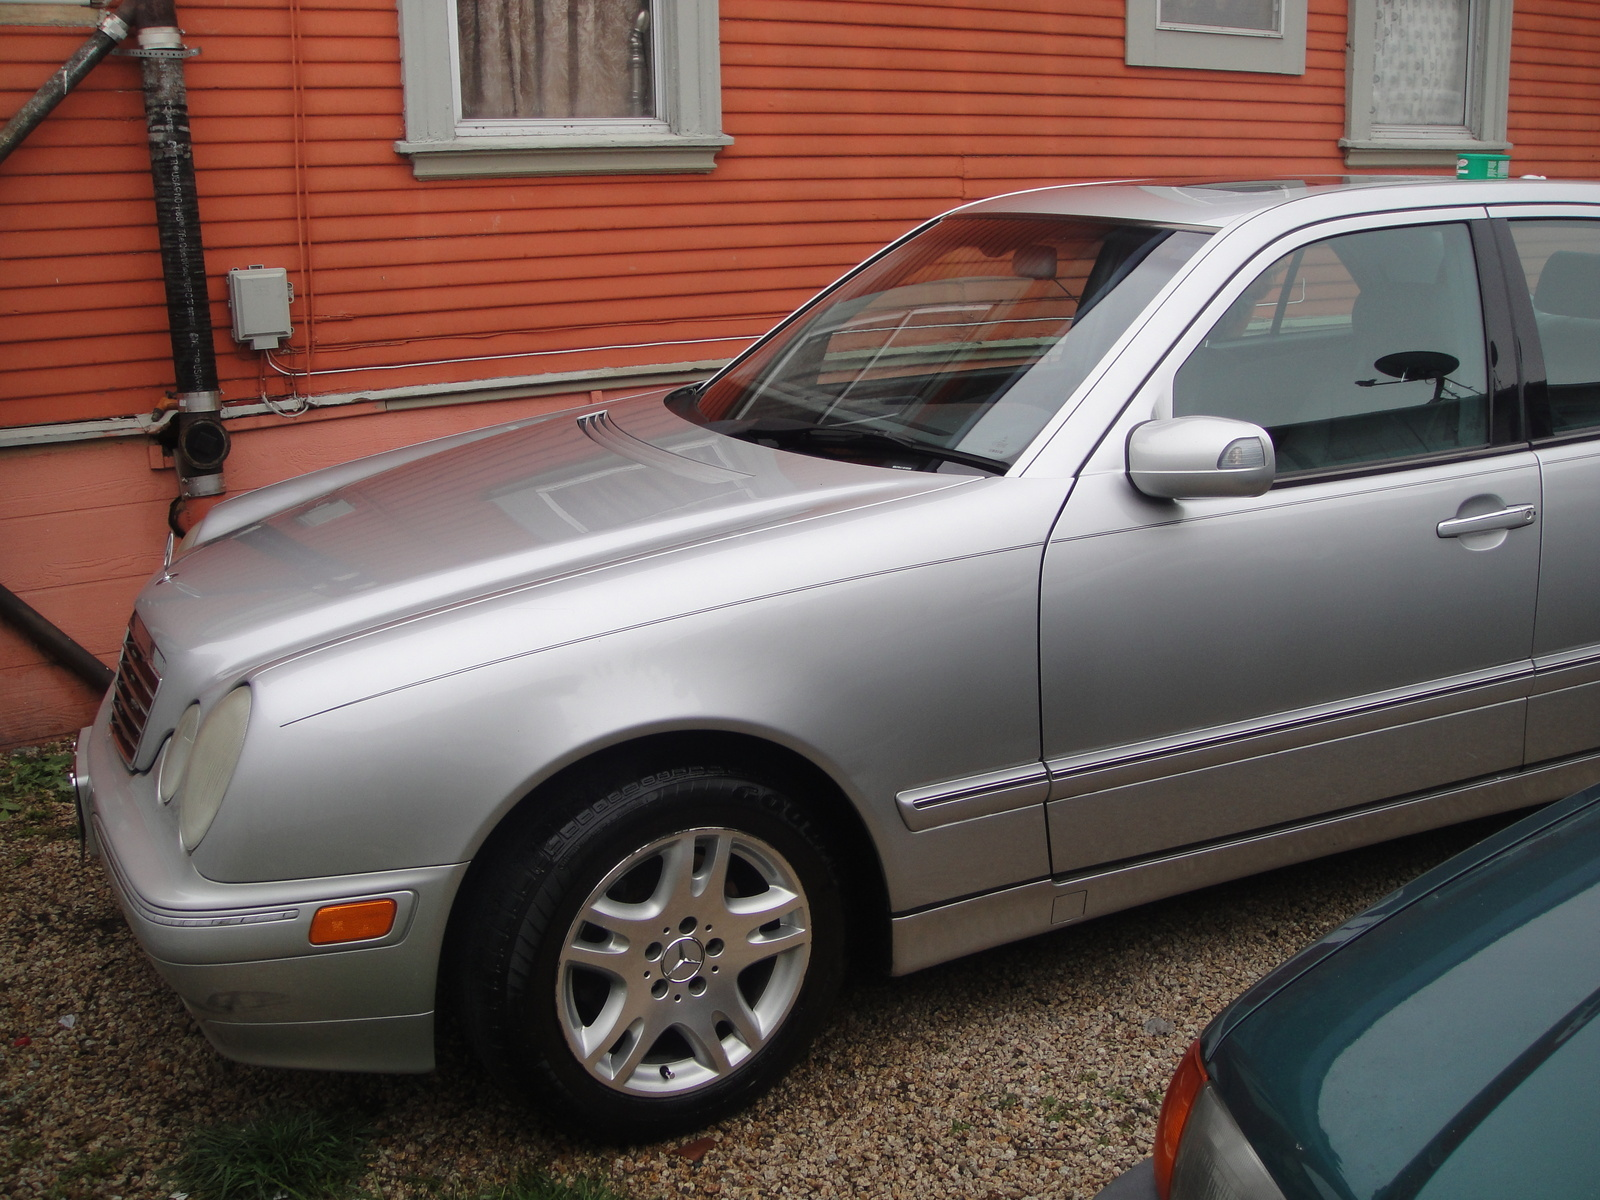 Mercedes benz e class questions my transmission stop for 2001 mercedes benz e320